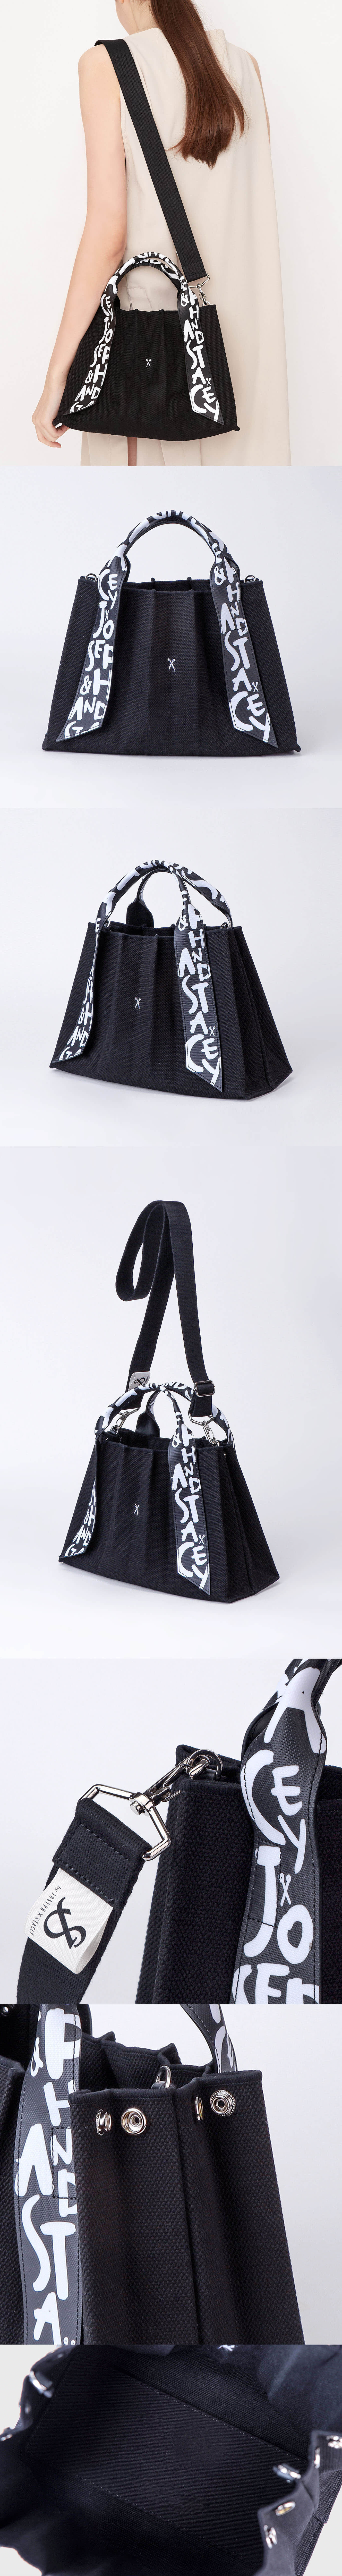 조셉앤스테이시(JOSEPH&STACEY) Lucky Pleats Canvas Graffiti S Black